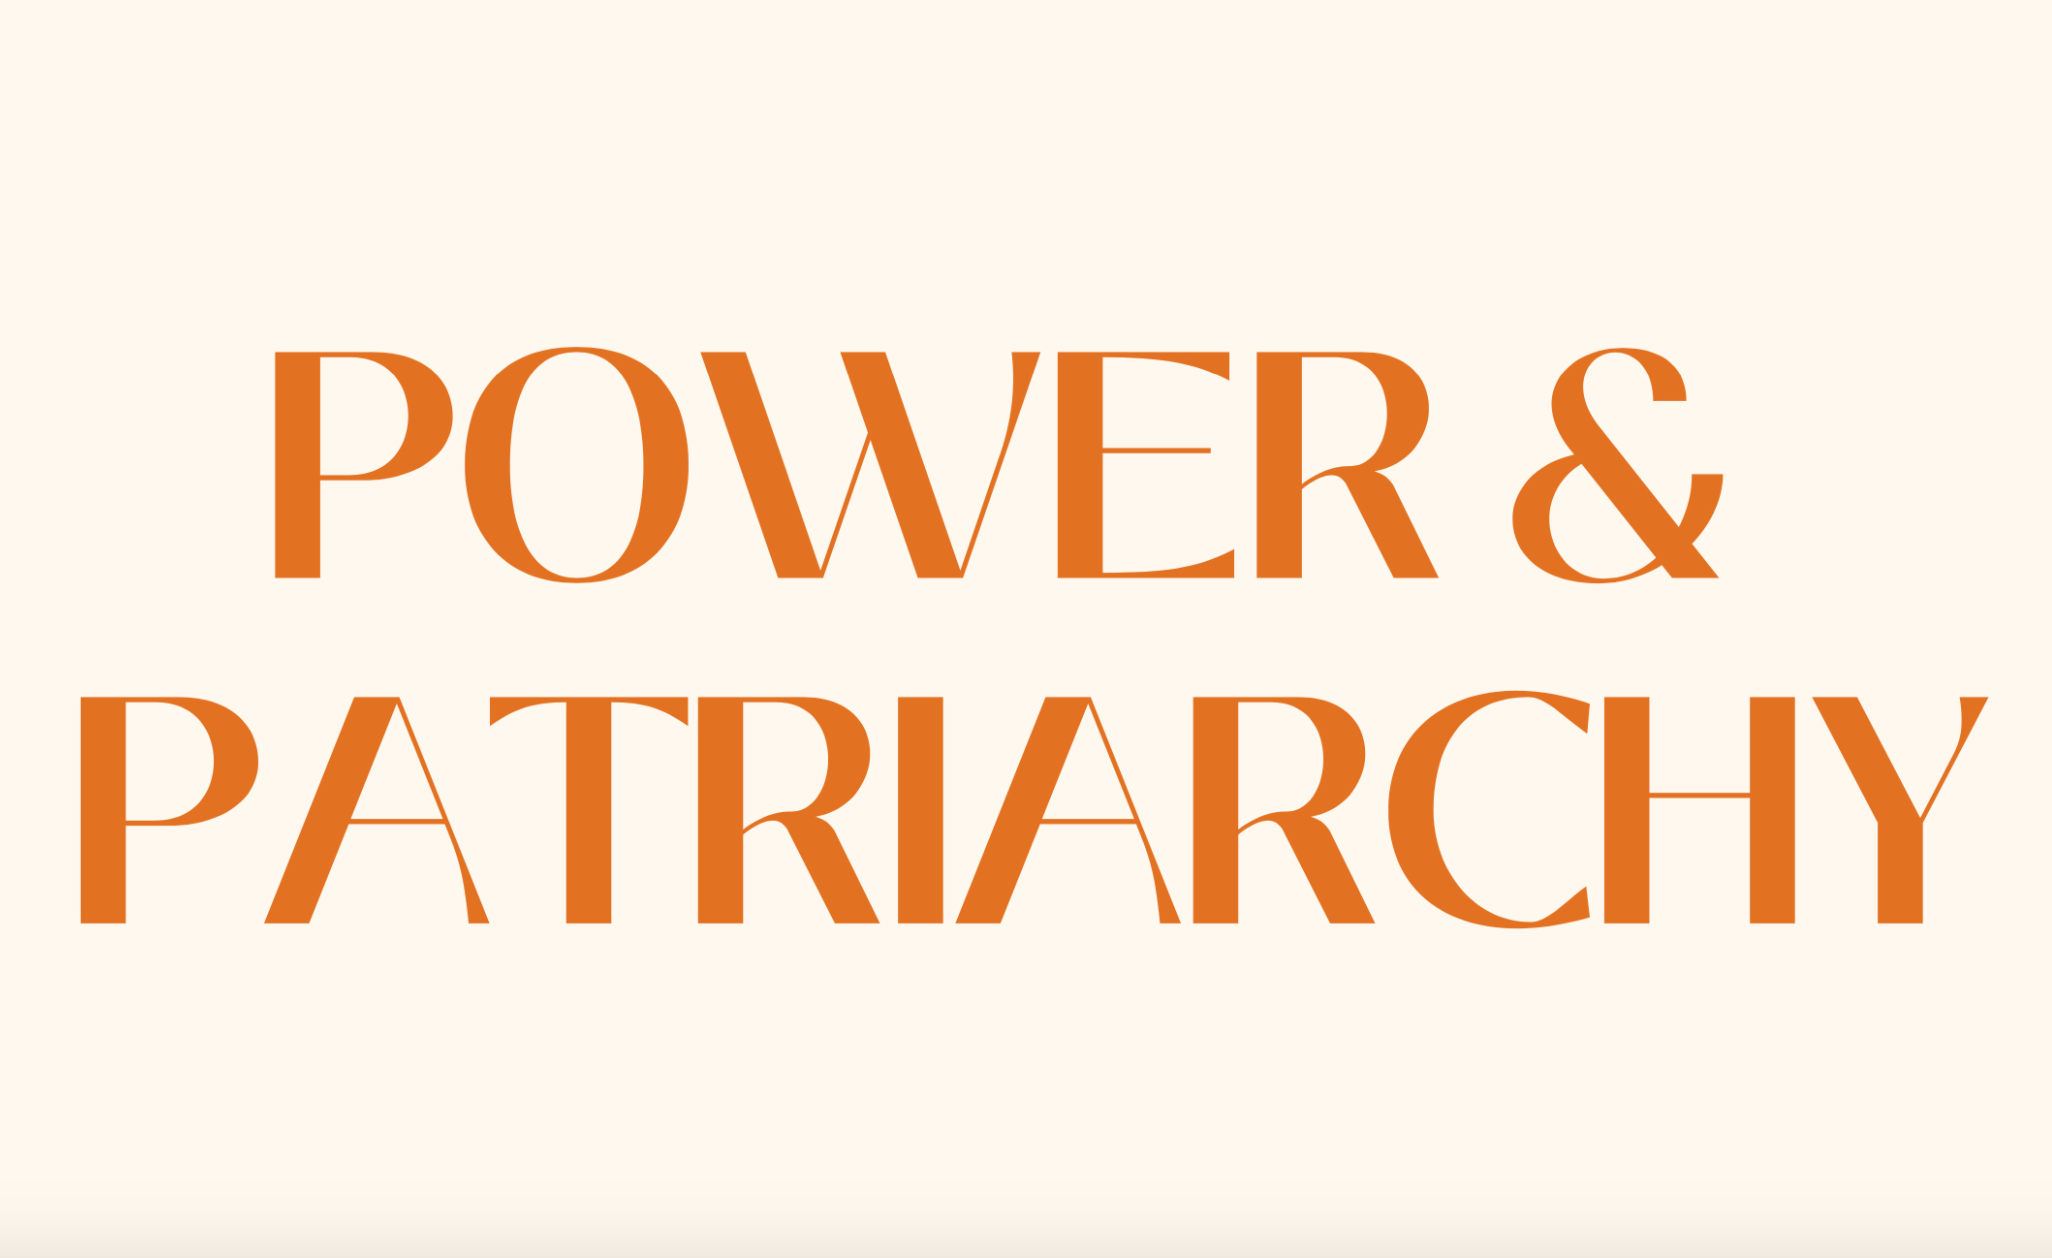 Power & Patriarchy 2022, Call for Papers: deadline 19 November 2021